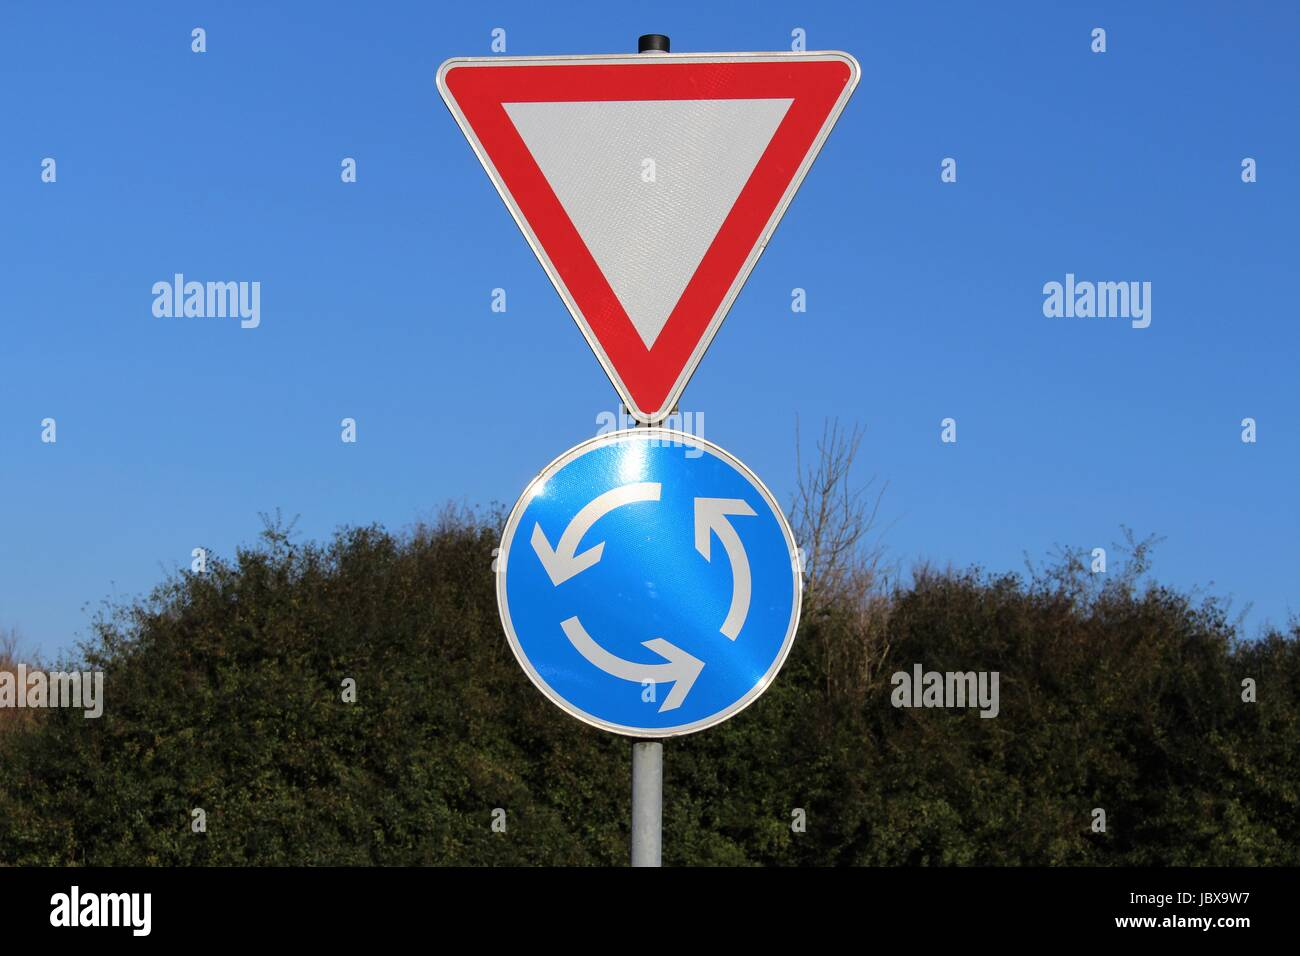 An Image of a traffic sign - Stock Image